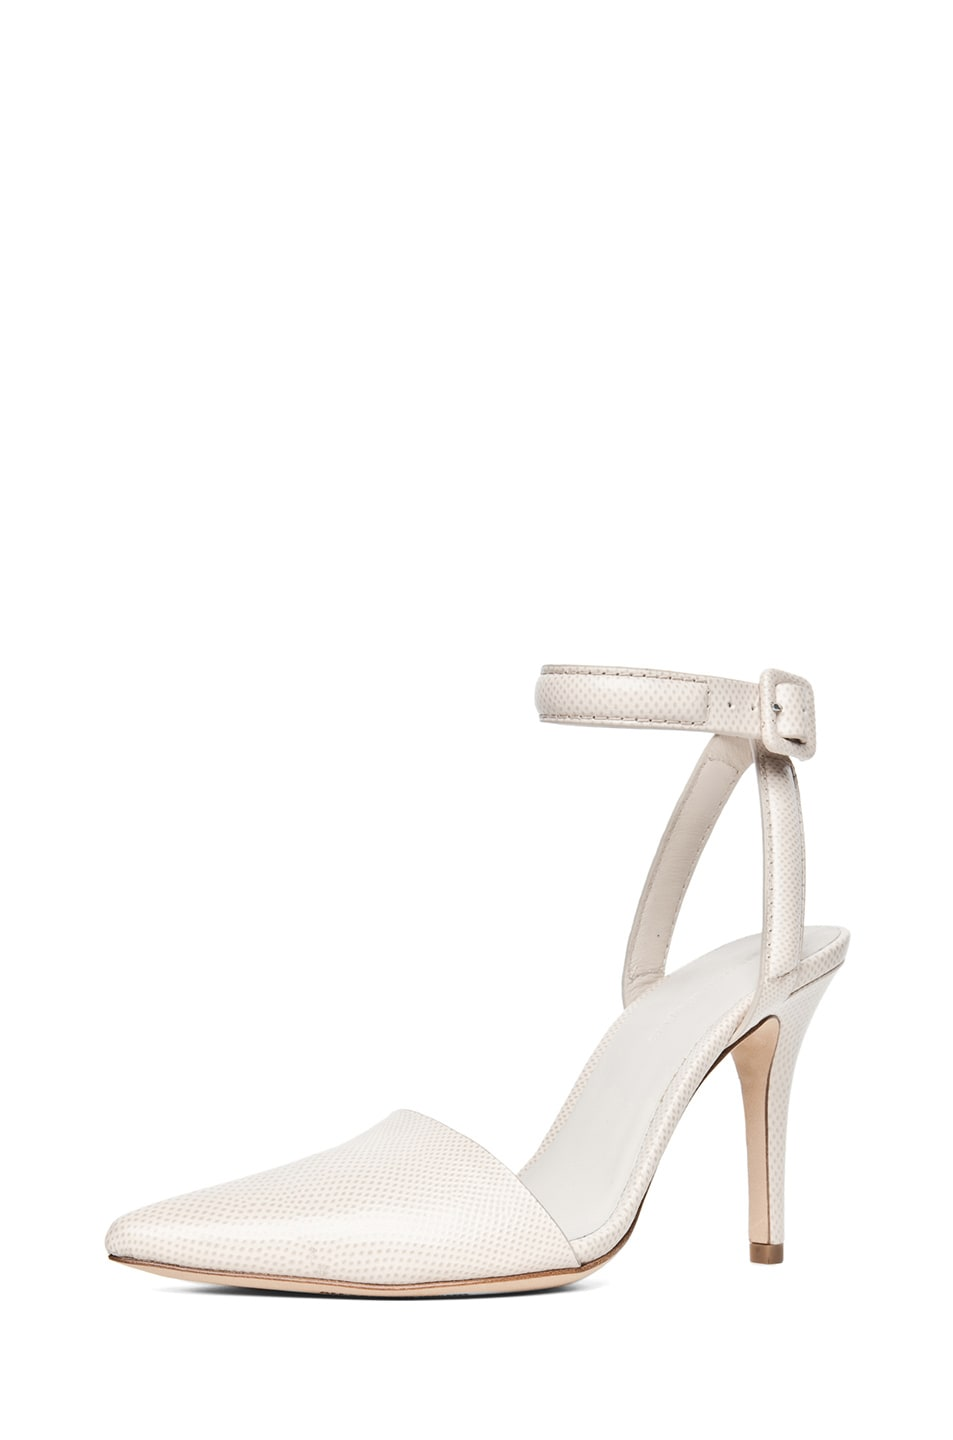 Image 2 of Alexander Wang Lovisa Python Embossed Calfskin Leather Pump in Bandage